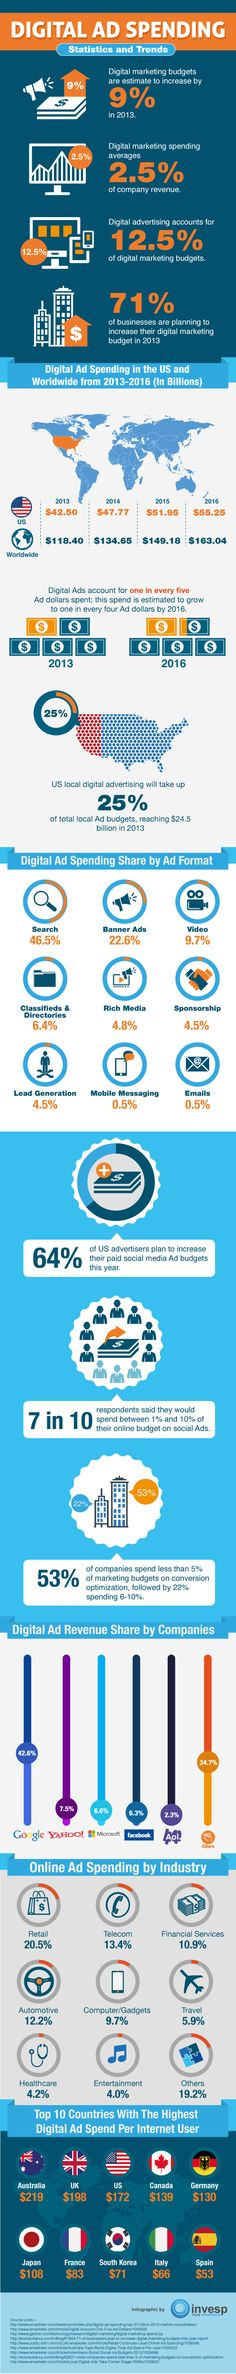 """Check out the """"Digital Ad Spending"""" infographic to know the digital marketing spending statistics and trends."""